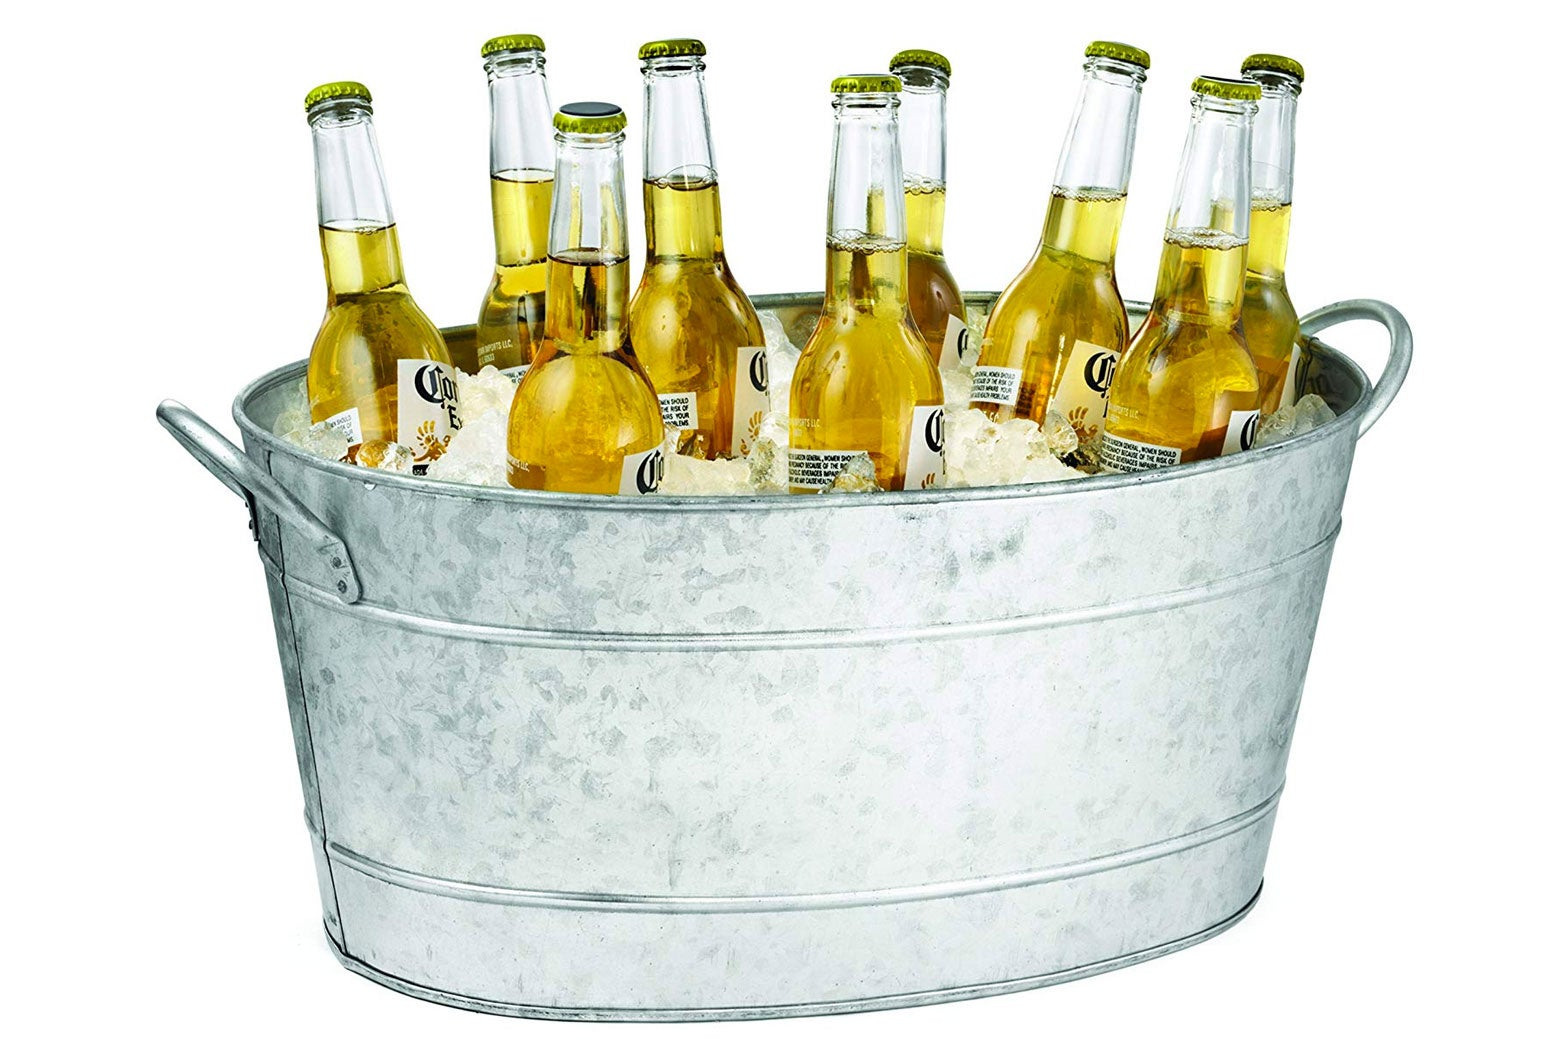 Galvanized beverage tub.